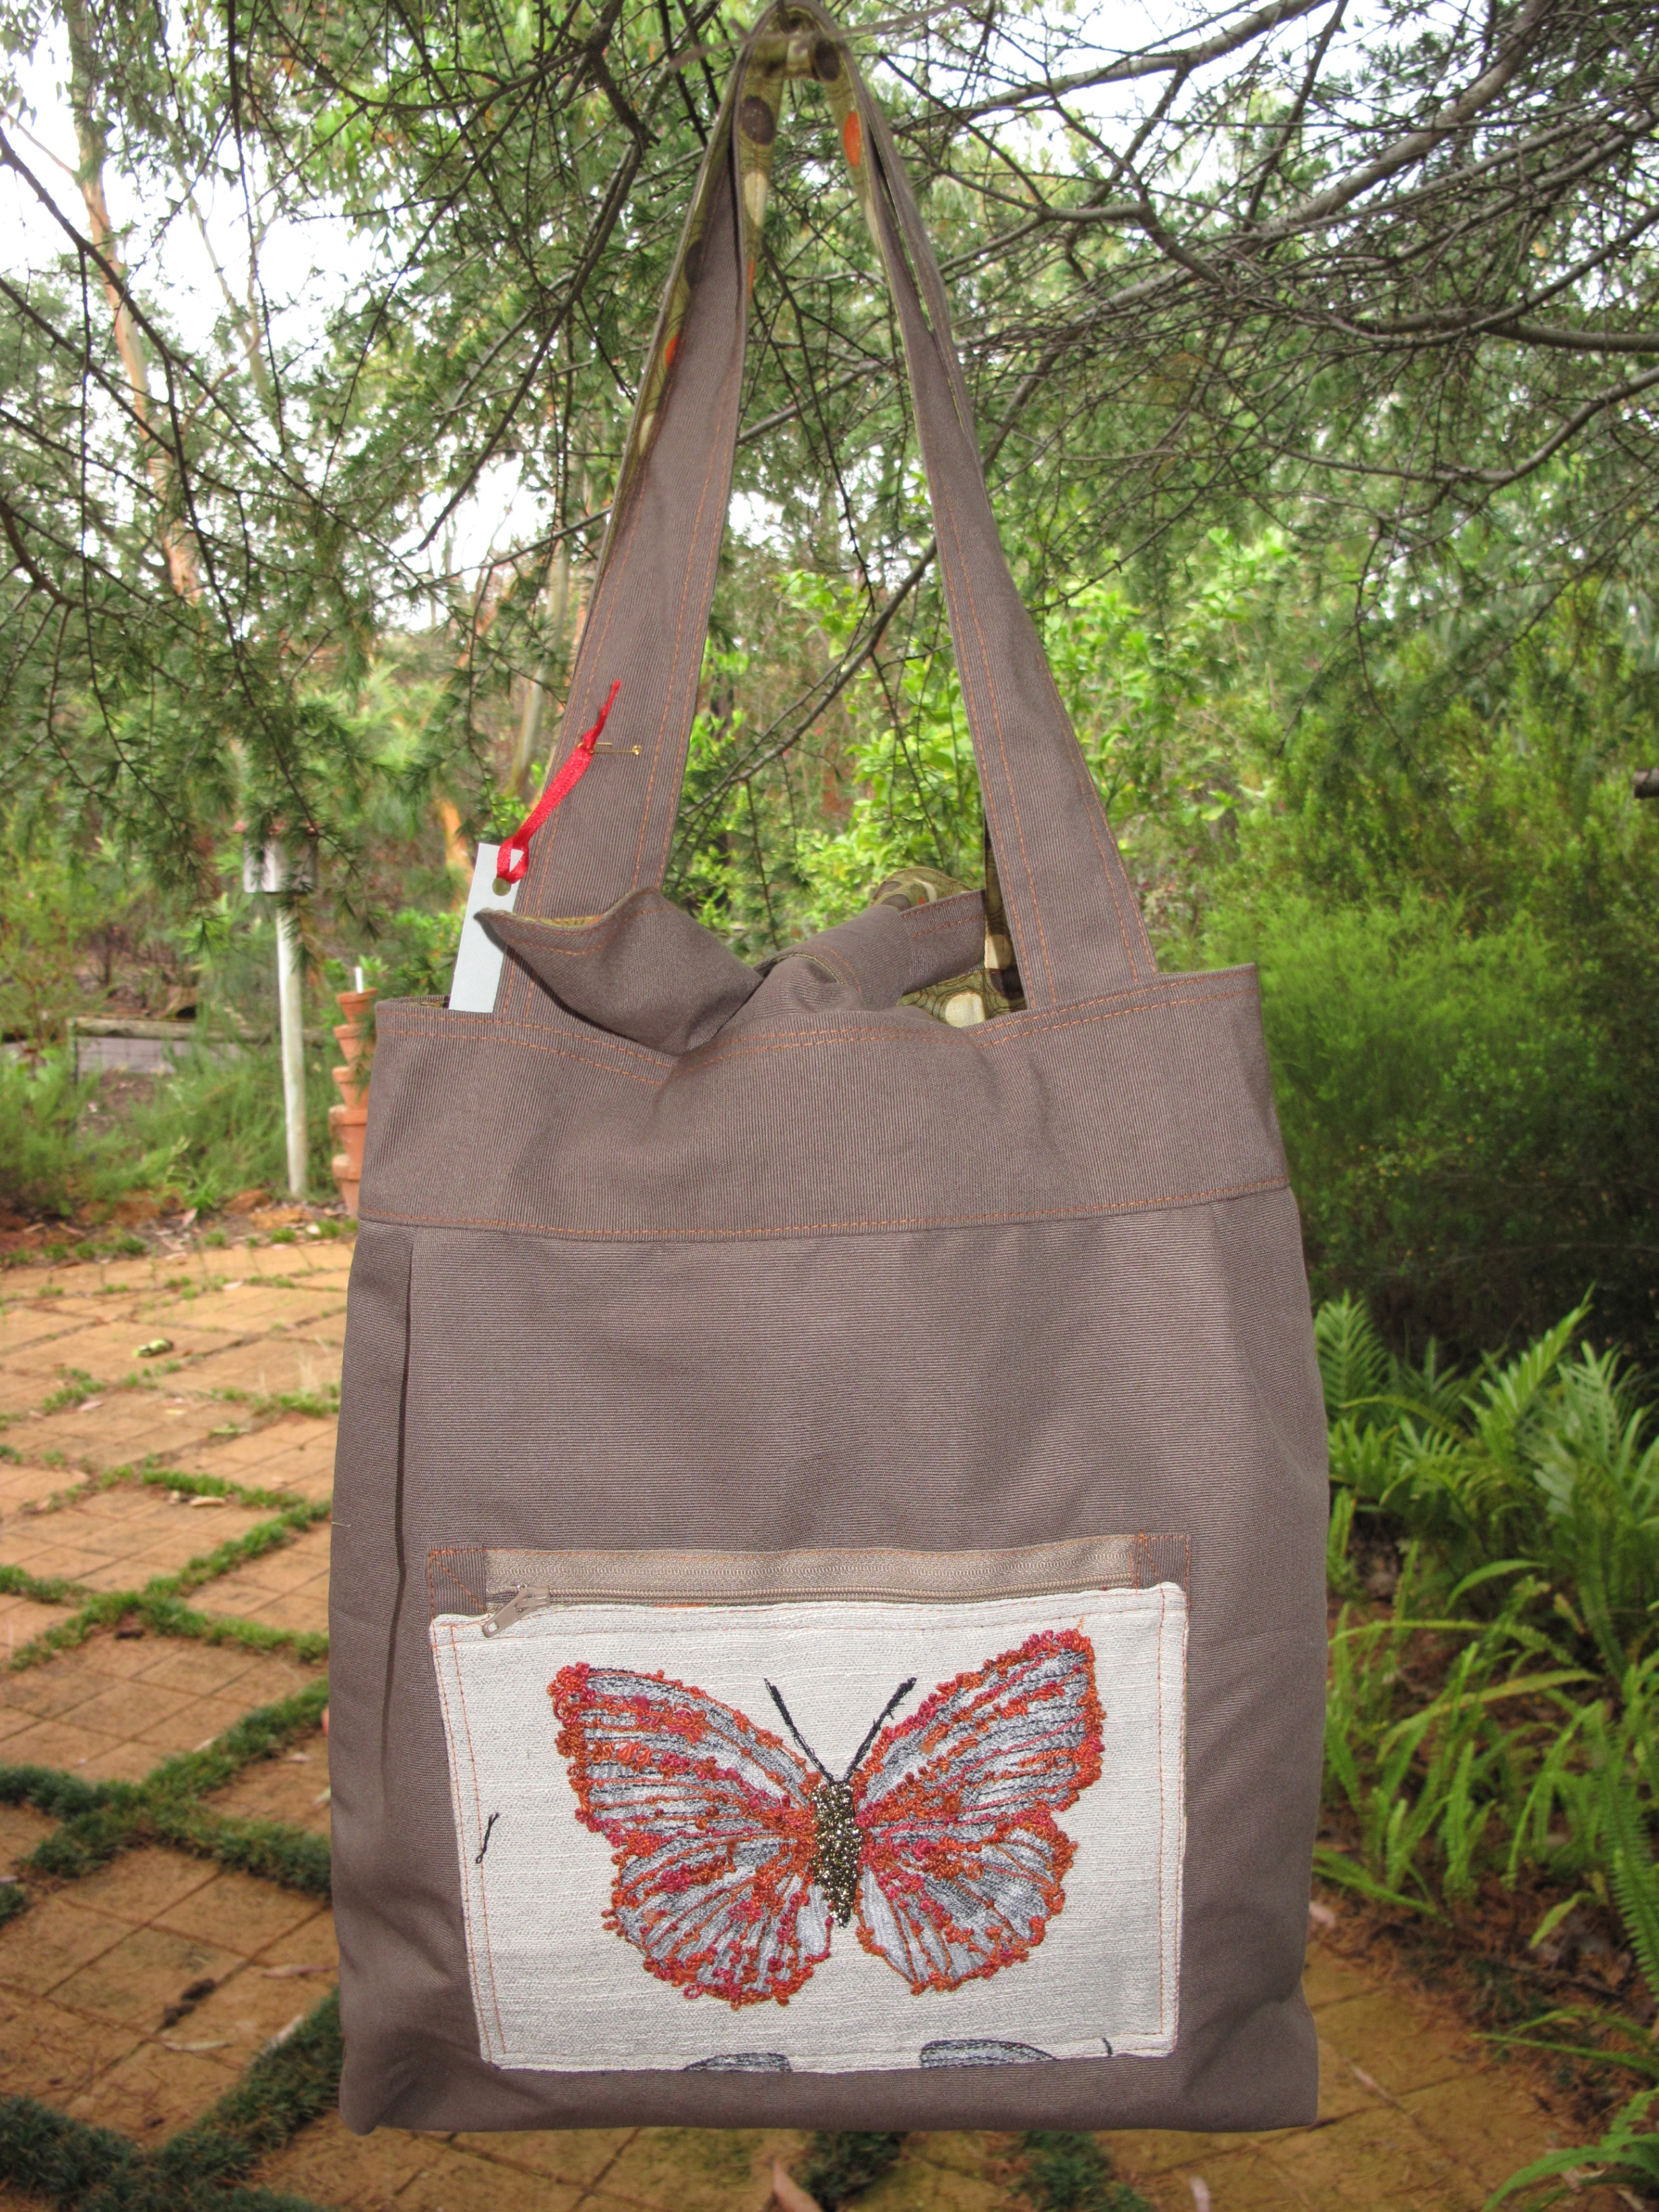 Reversible Material Bag - Butterfly 2